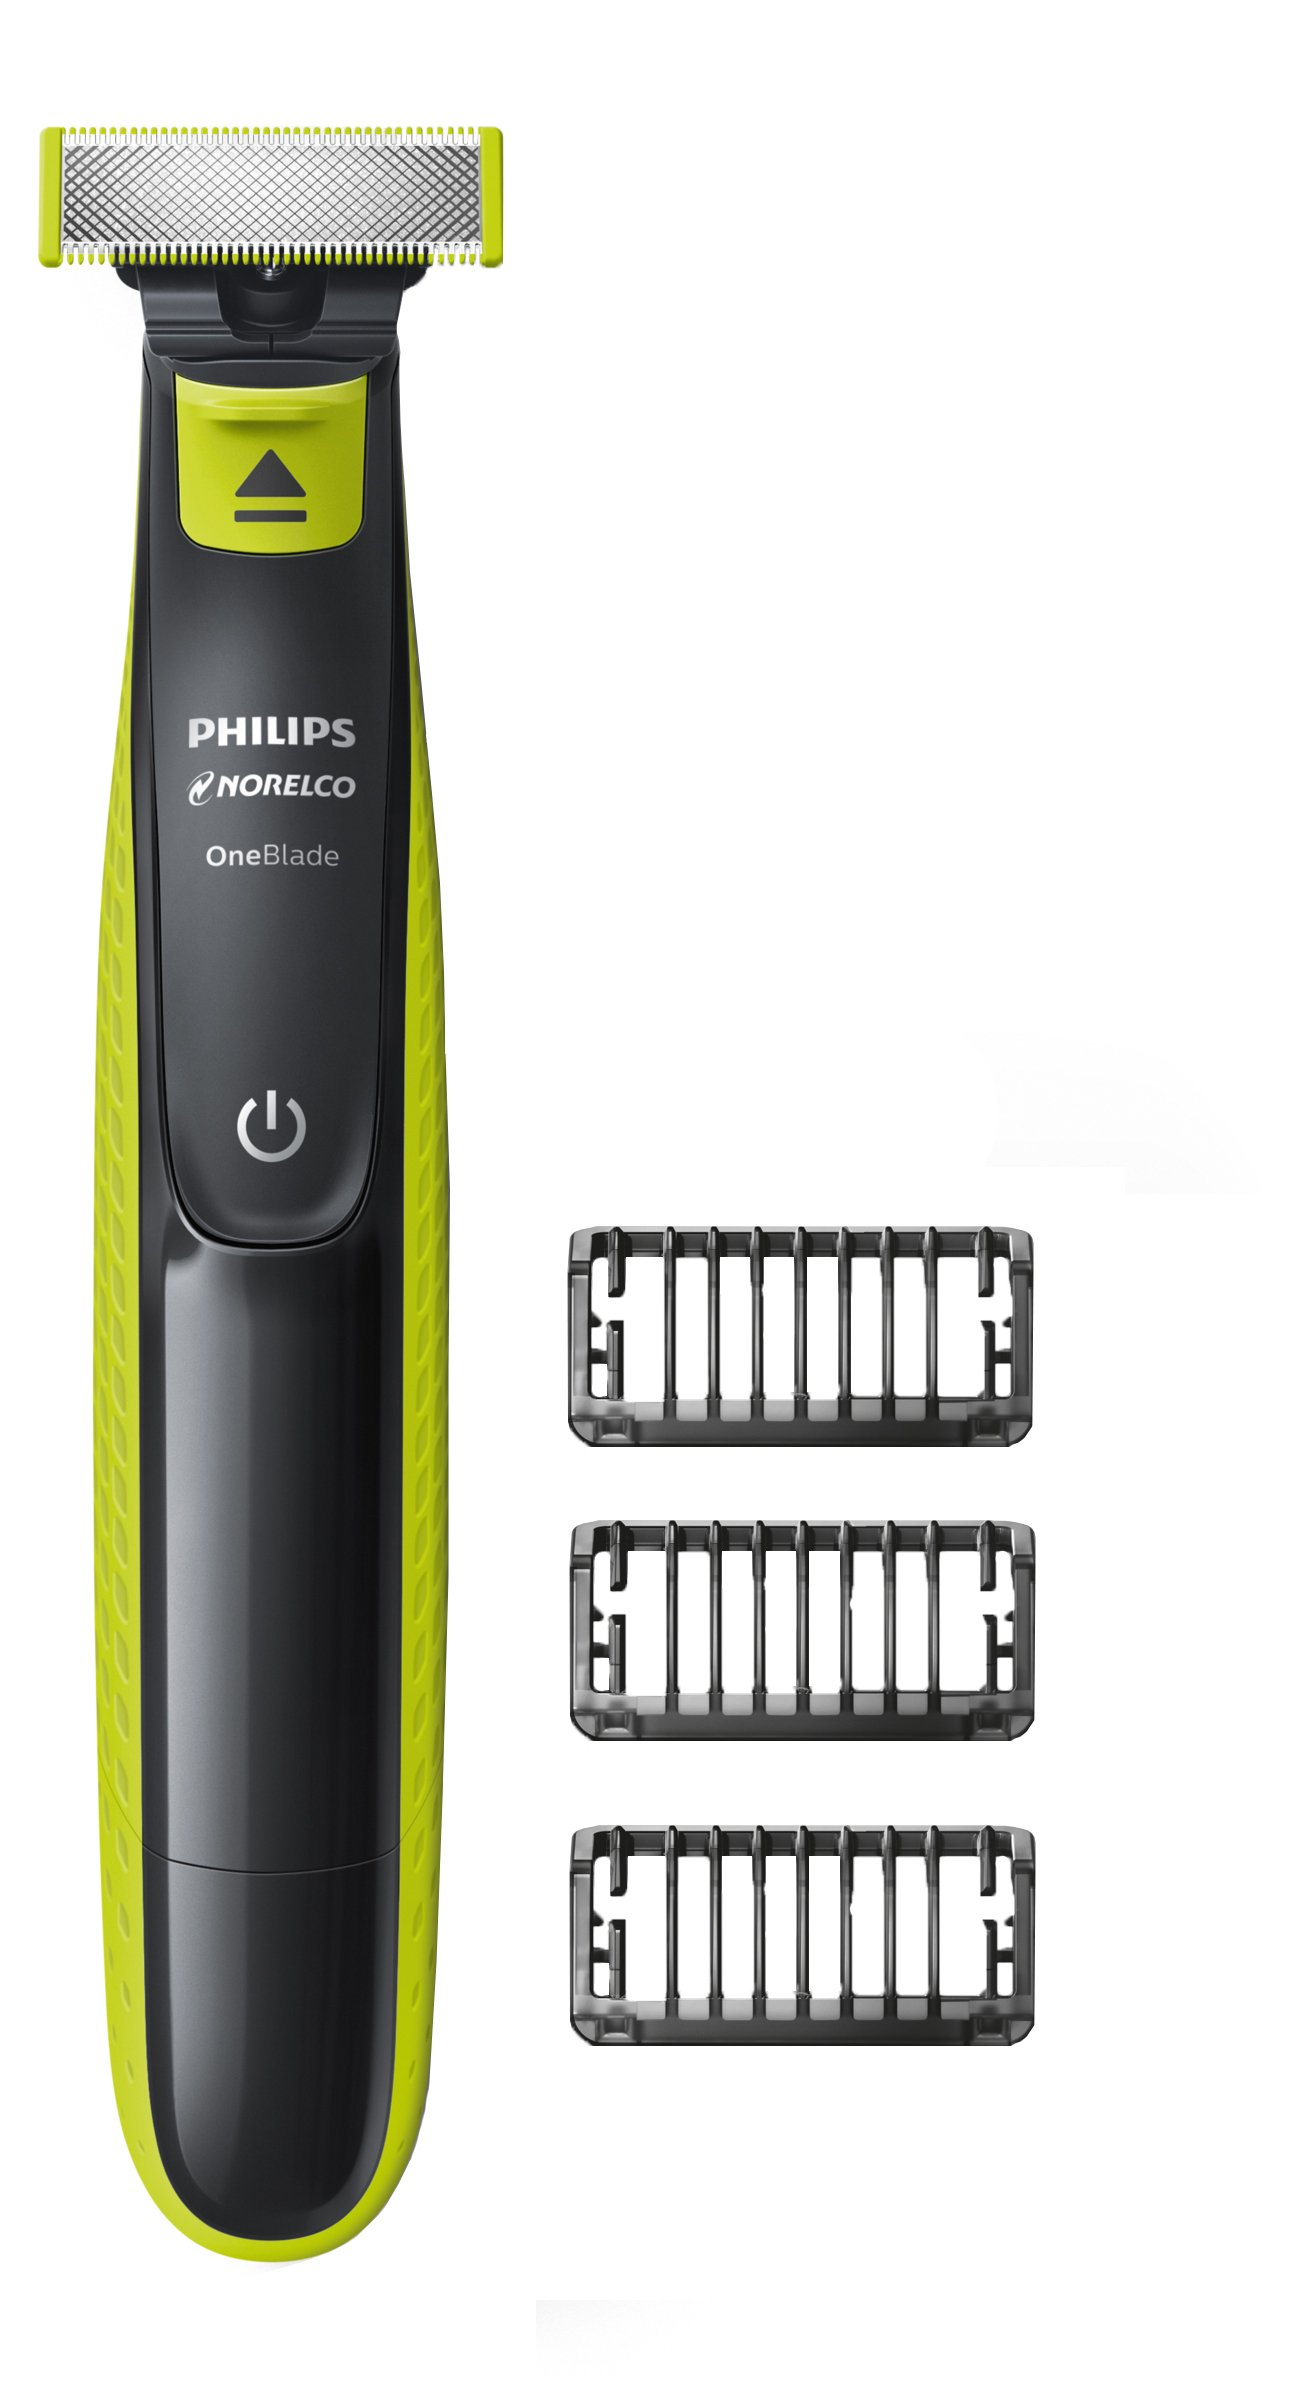 Philips Norelco QP2520/70 OneBlade, Hybrid Electric Trimmer and Shaver